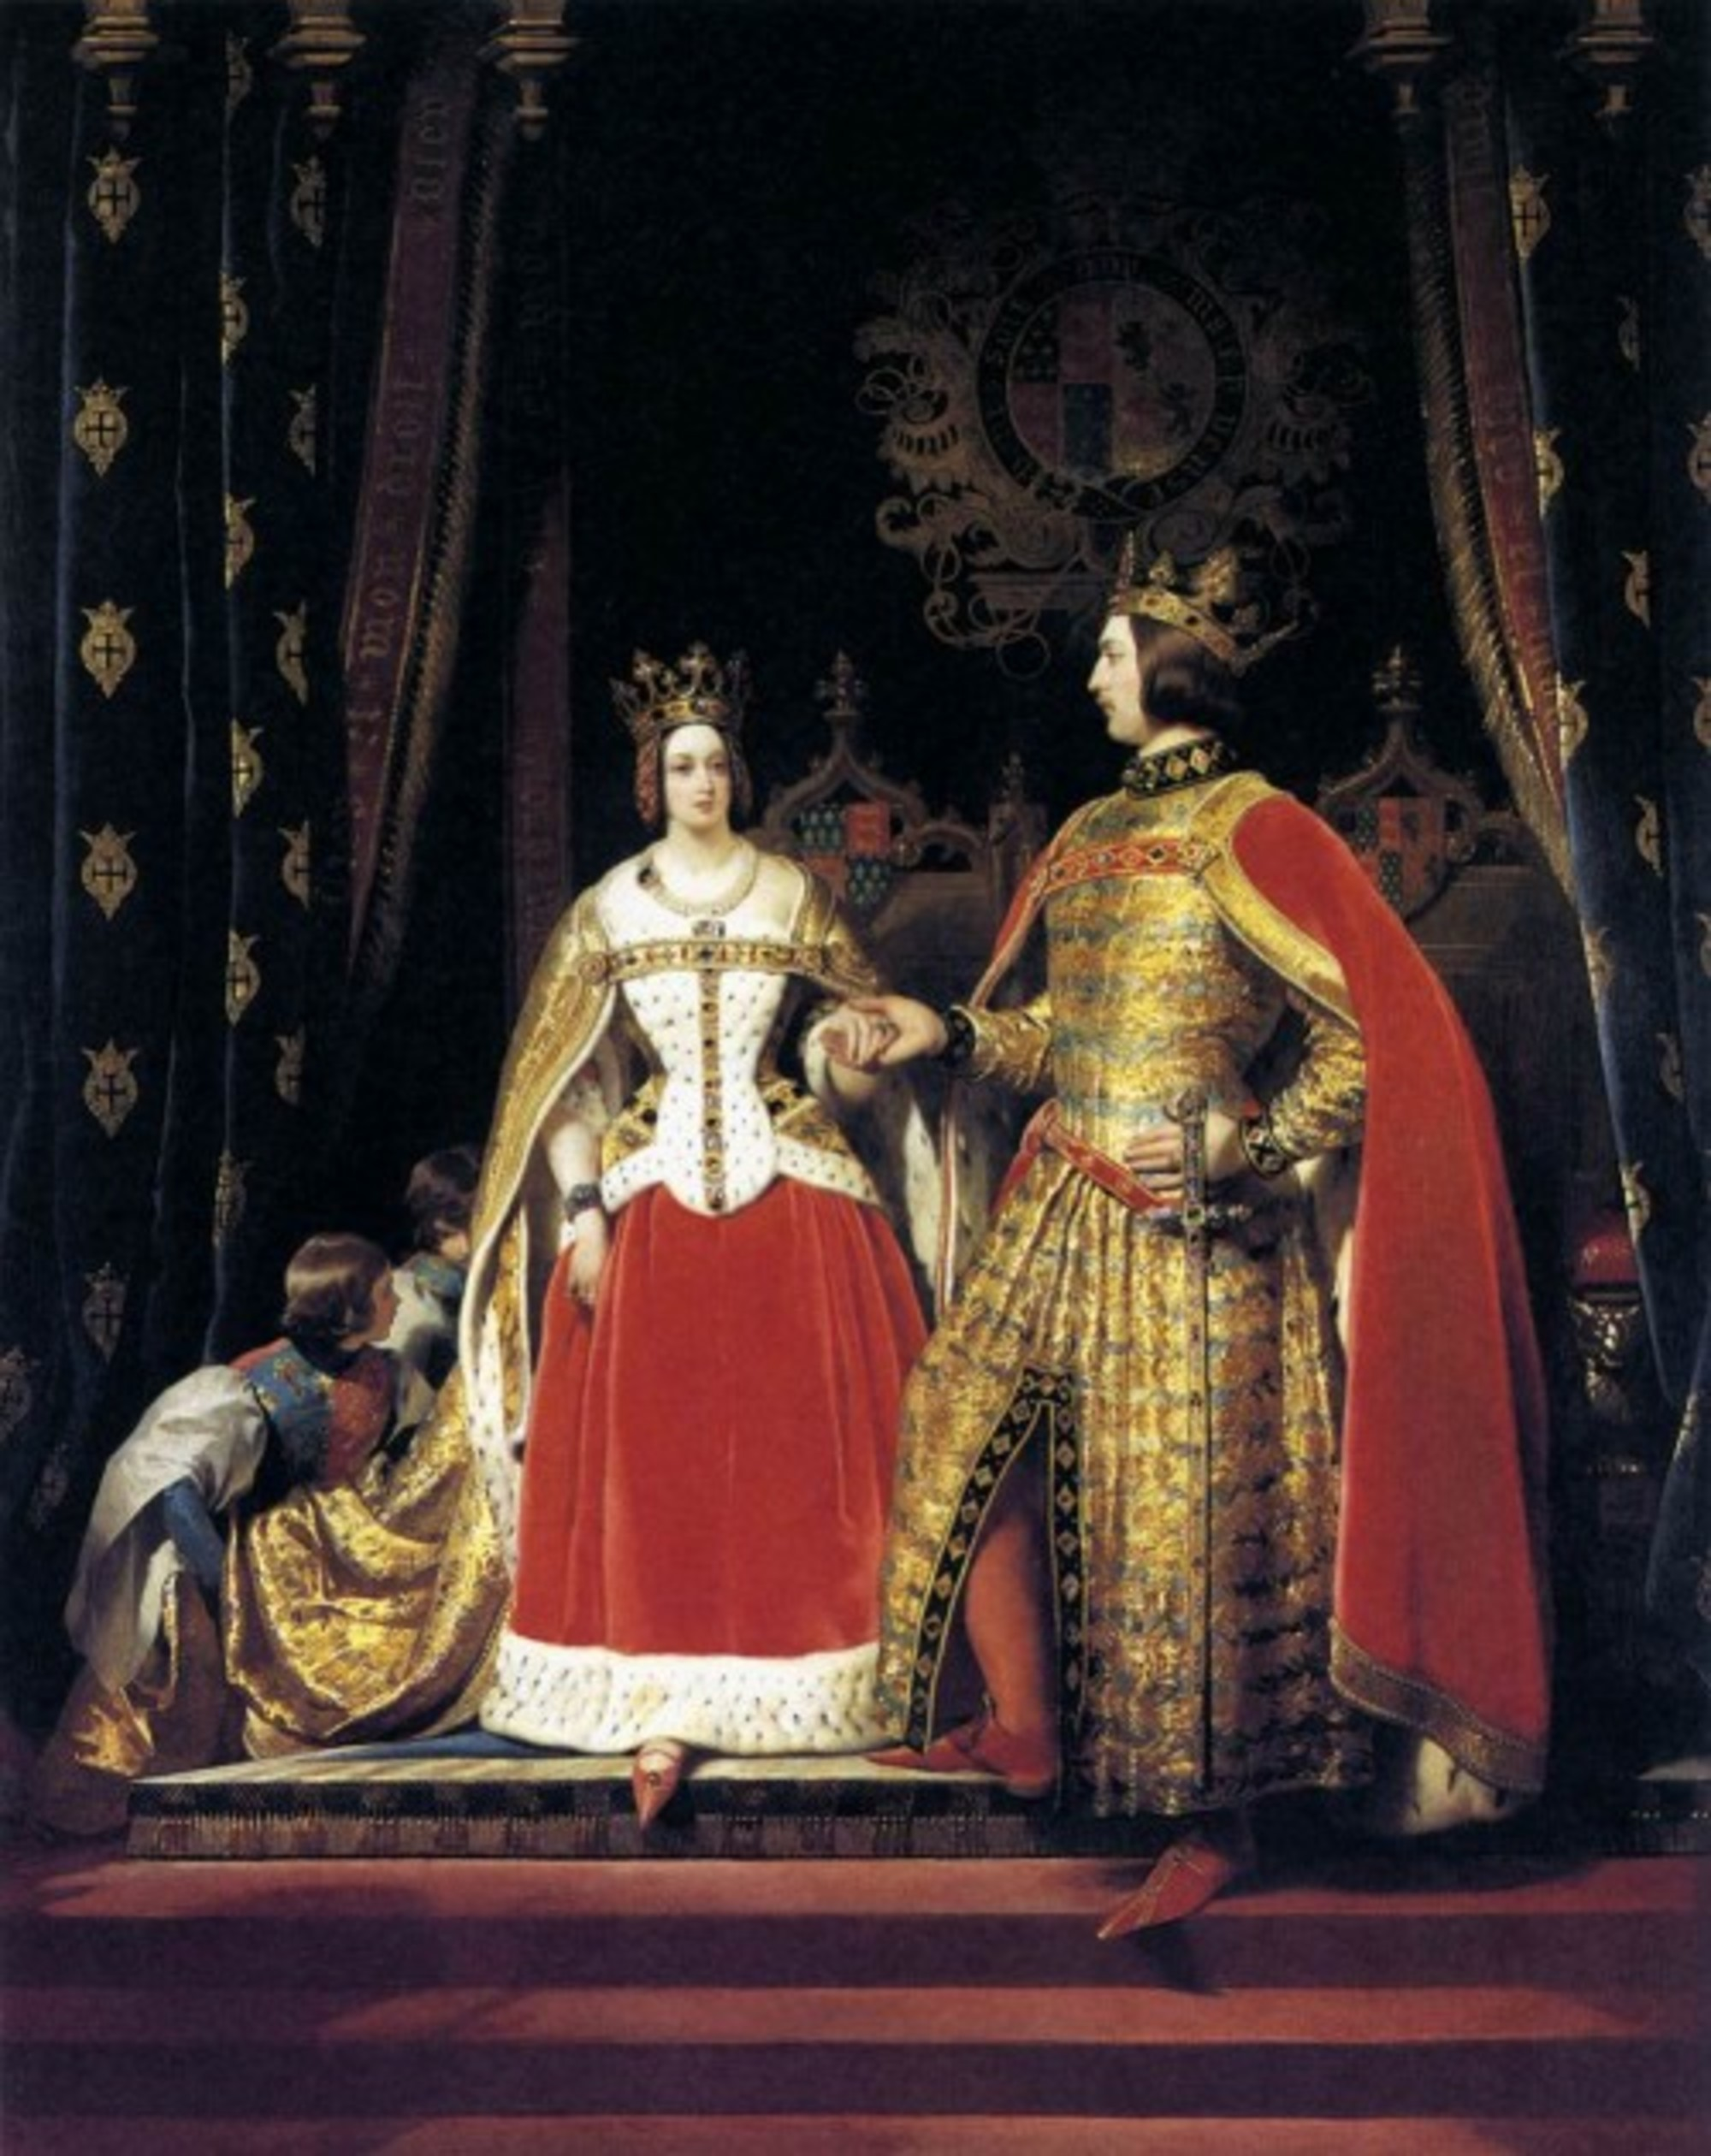 Edwin-Landseer---Queen-Victoria-and-Prince-Albert-at-the-Bal-Costume-of-12-May-1842---WGA12439.jpg